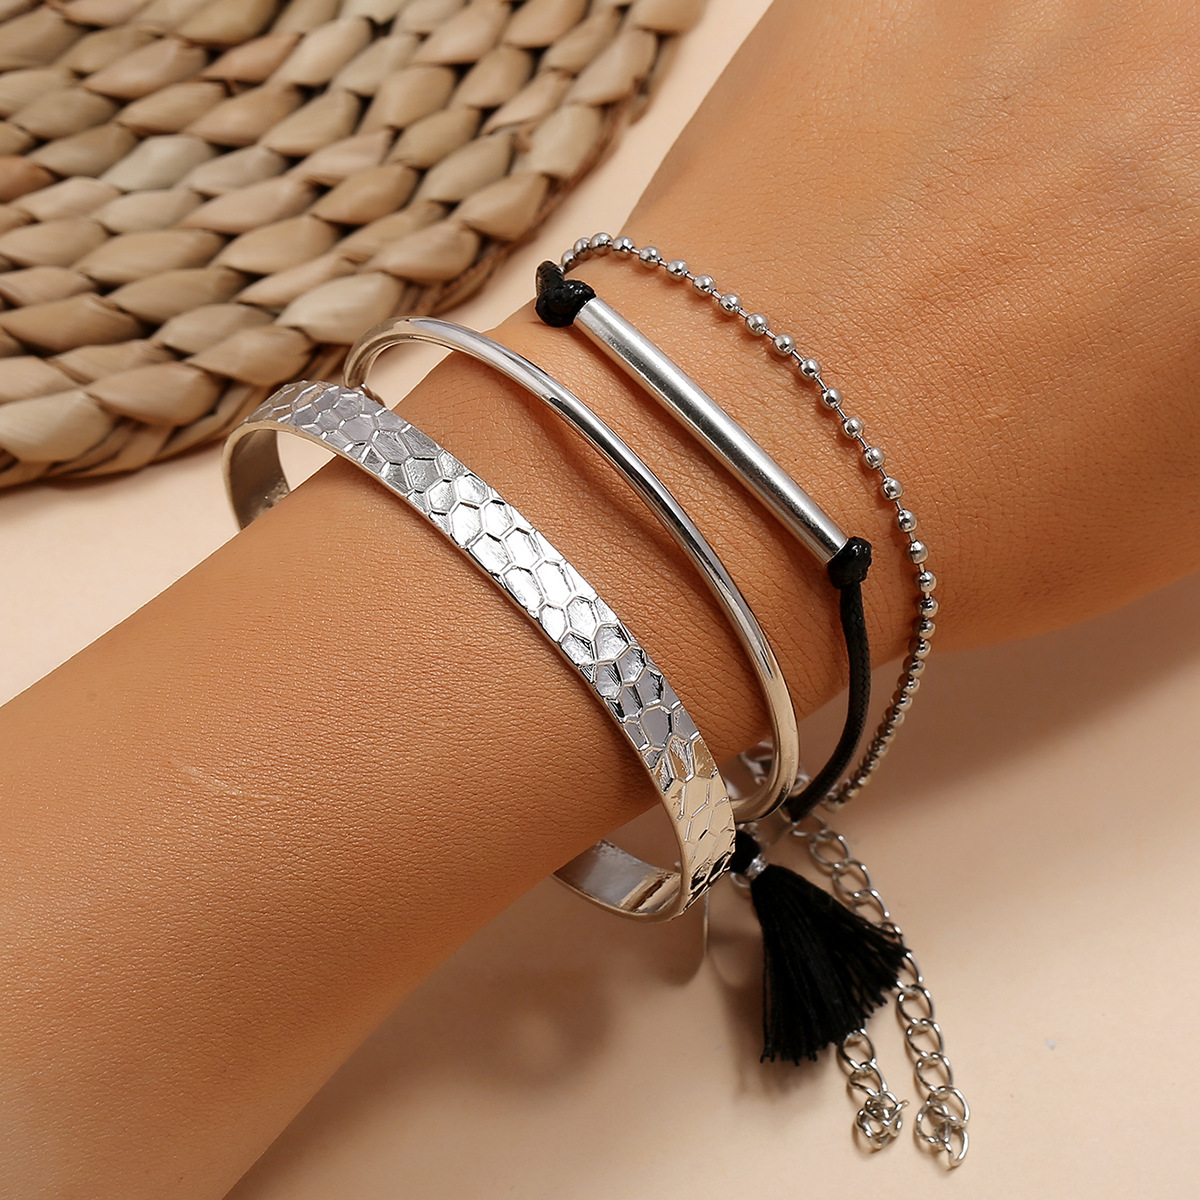 4 Pcs/Set Metal <font><b>Tube</b></font> Black Tassel Rope Hand Chains Female Circle Round Open Bangle&<font><b>bracelets</b></font> for Women <font><b>Silver</b></font> Color Simple New image